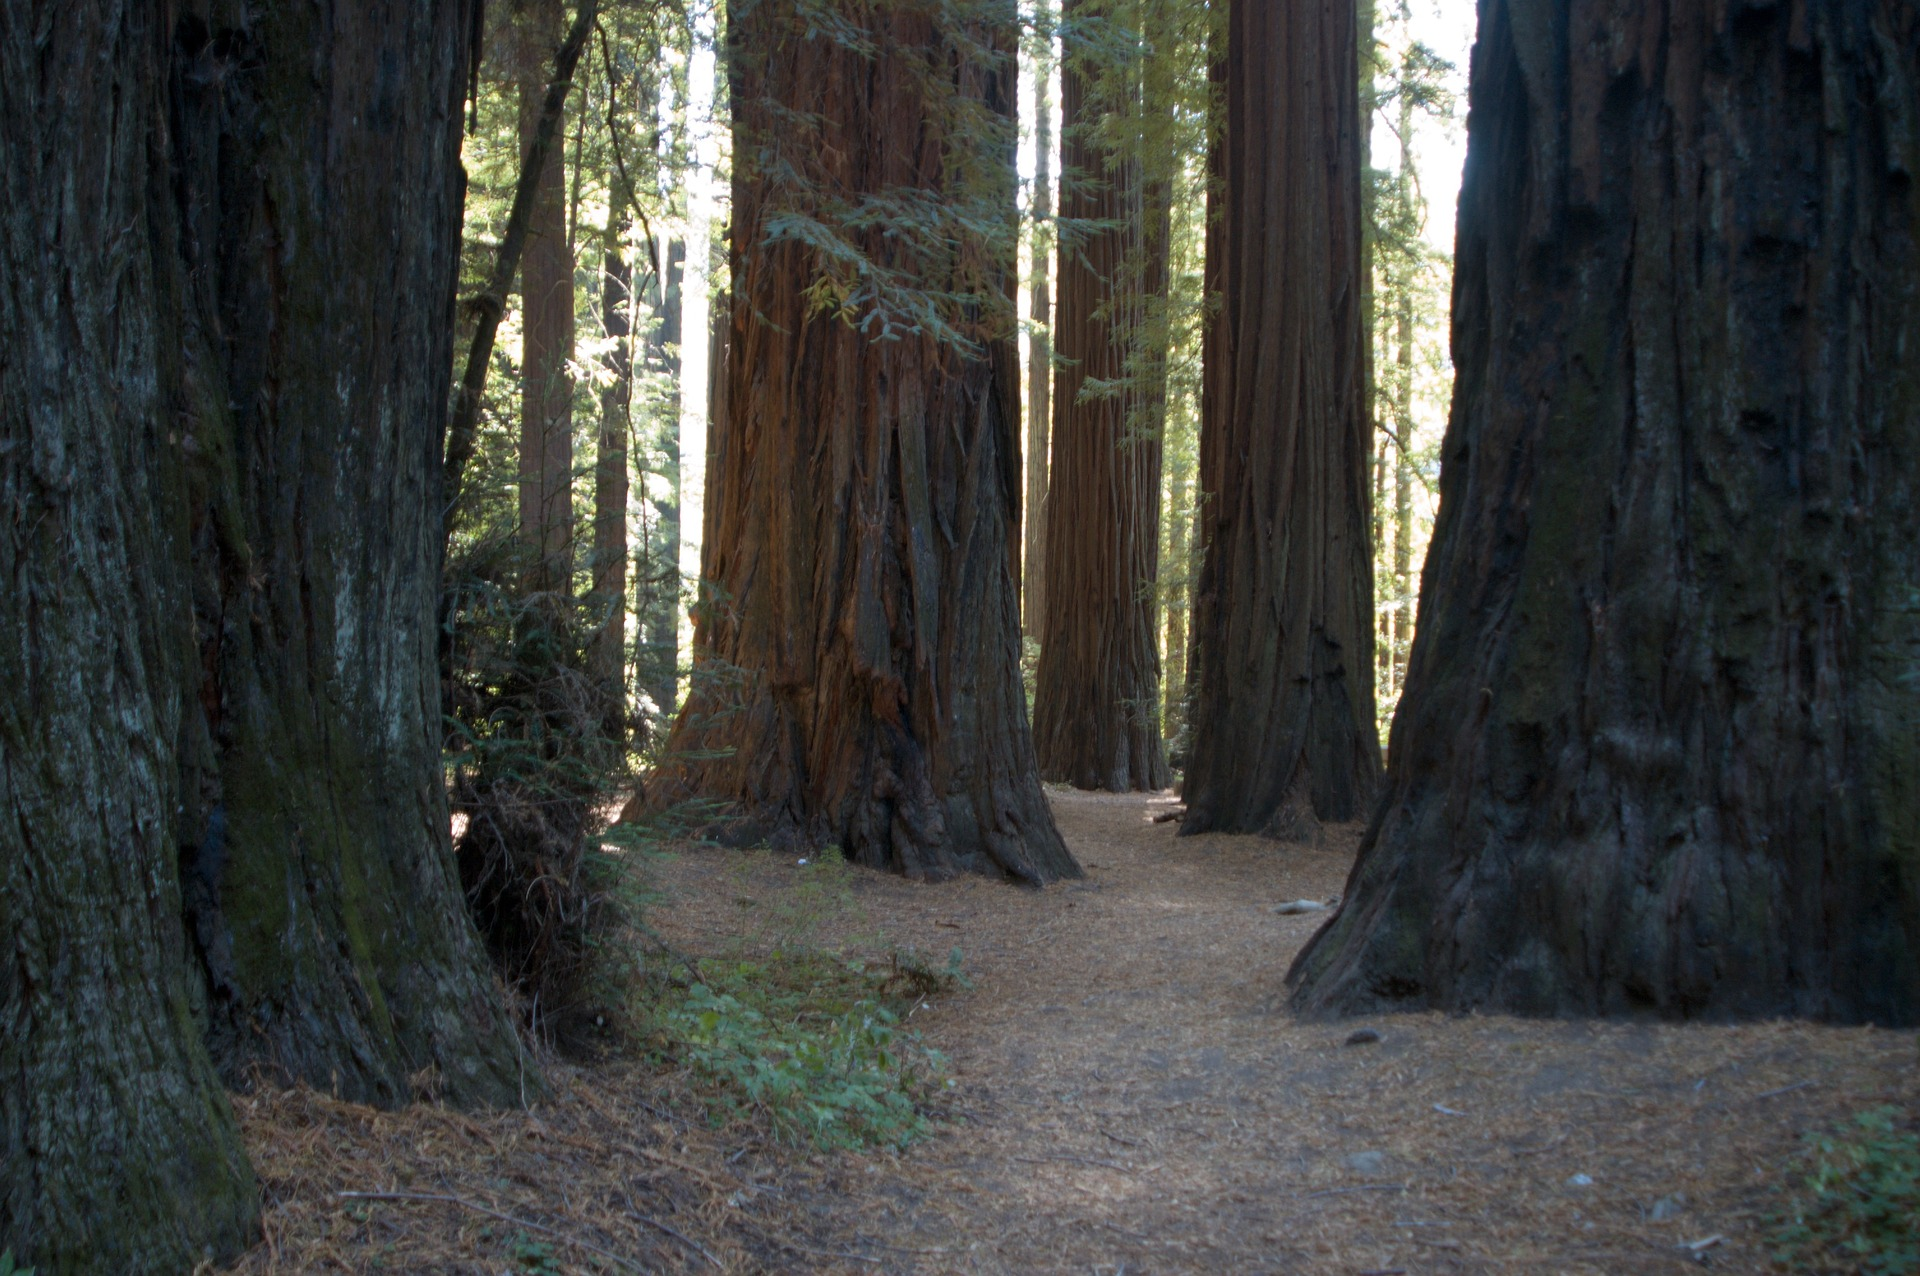 Muir Woods, Marin County, California